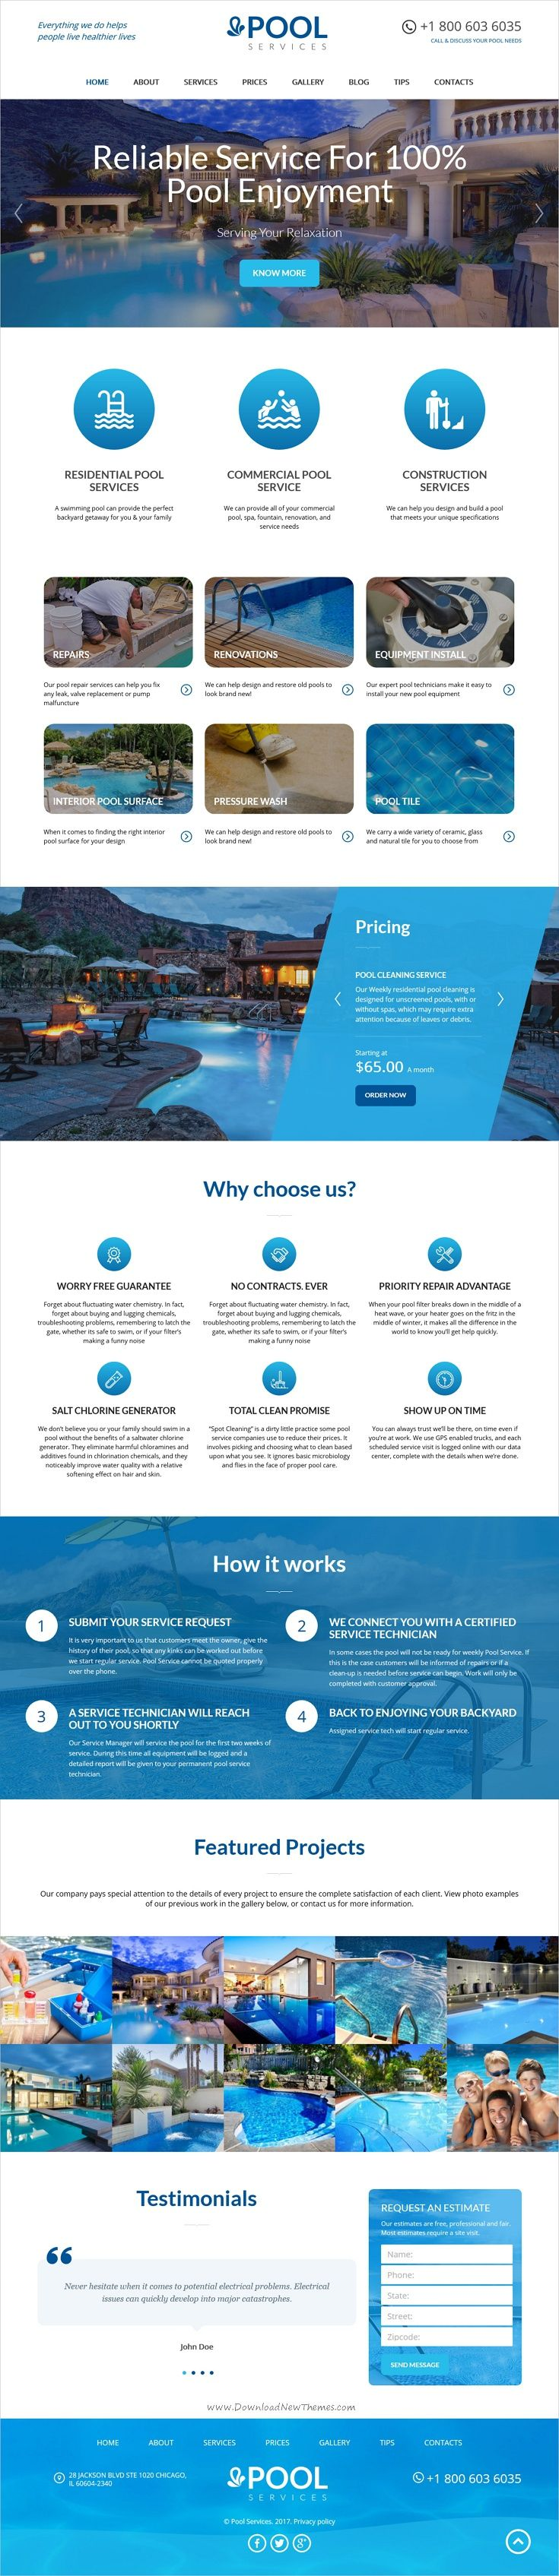 Pool Service is a modern, clean and professional #WordPress theme for #pool cleaning #services business website download now➩ https://themeforest.net/item/pool-services-wordpress-theme/19213092?ref=Datasata